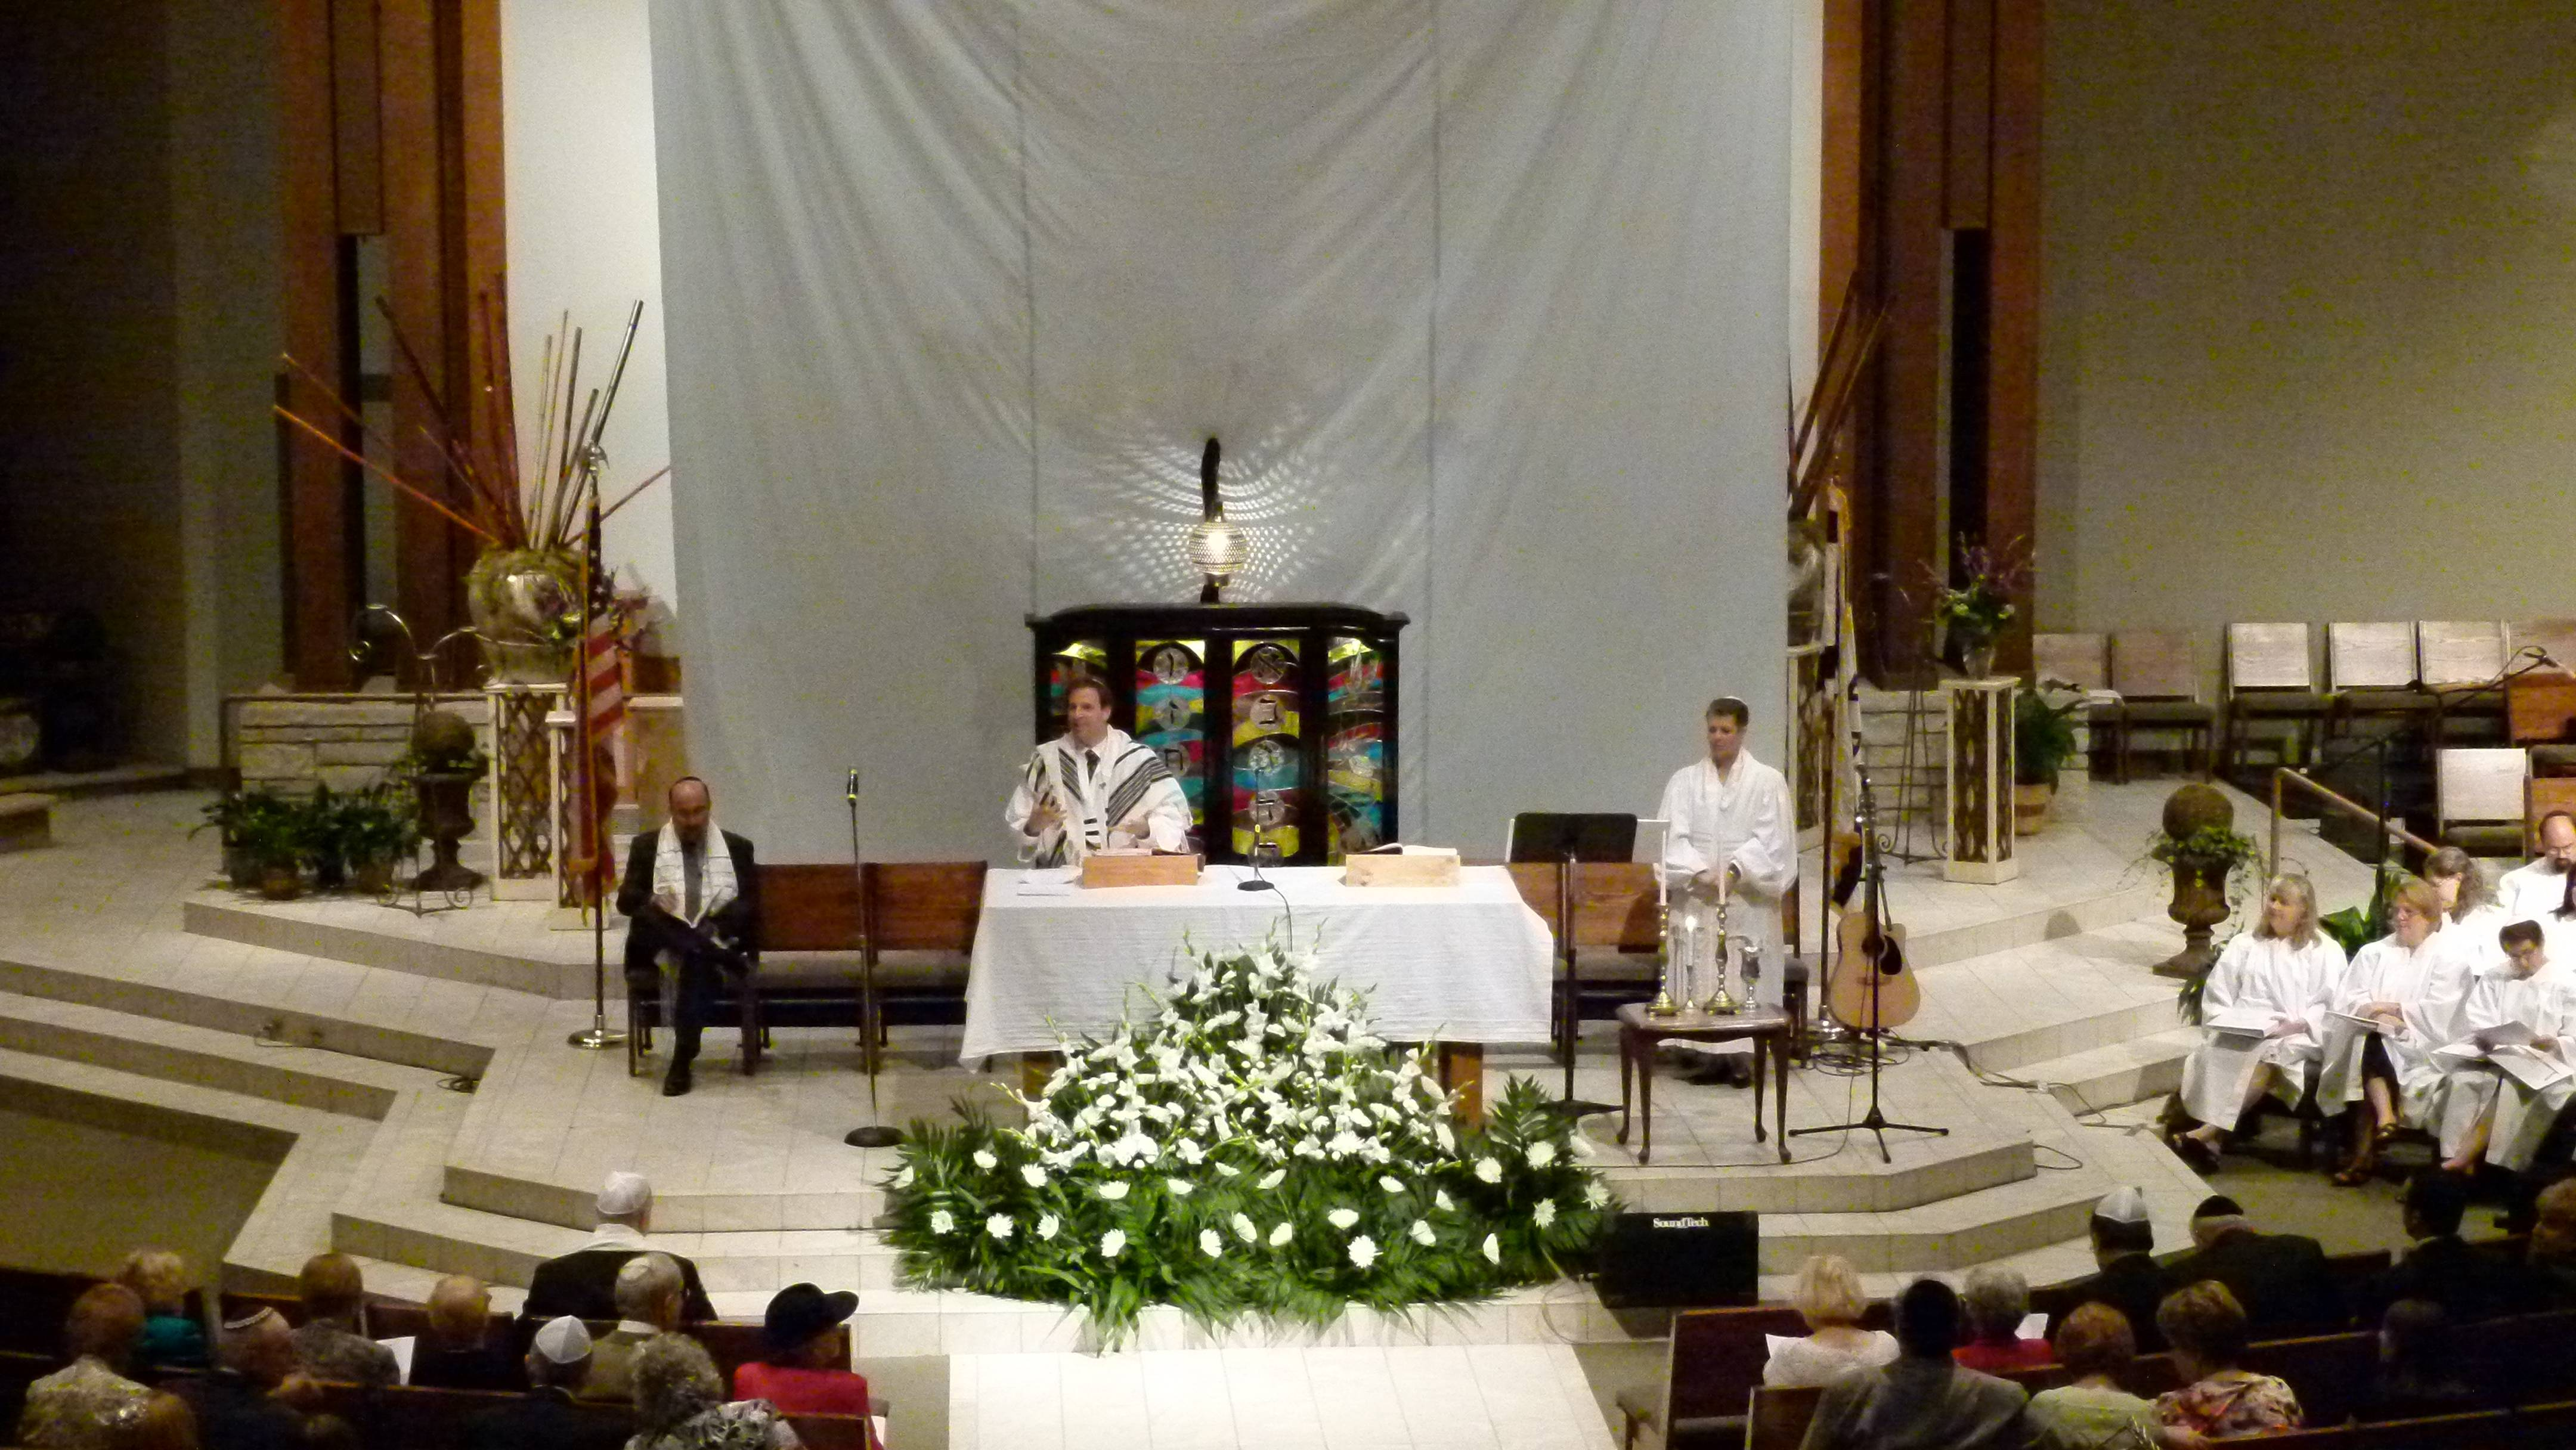 Jews observe High Holy Days in Catholic church